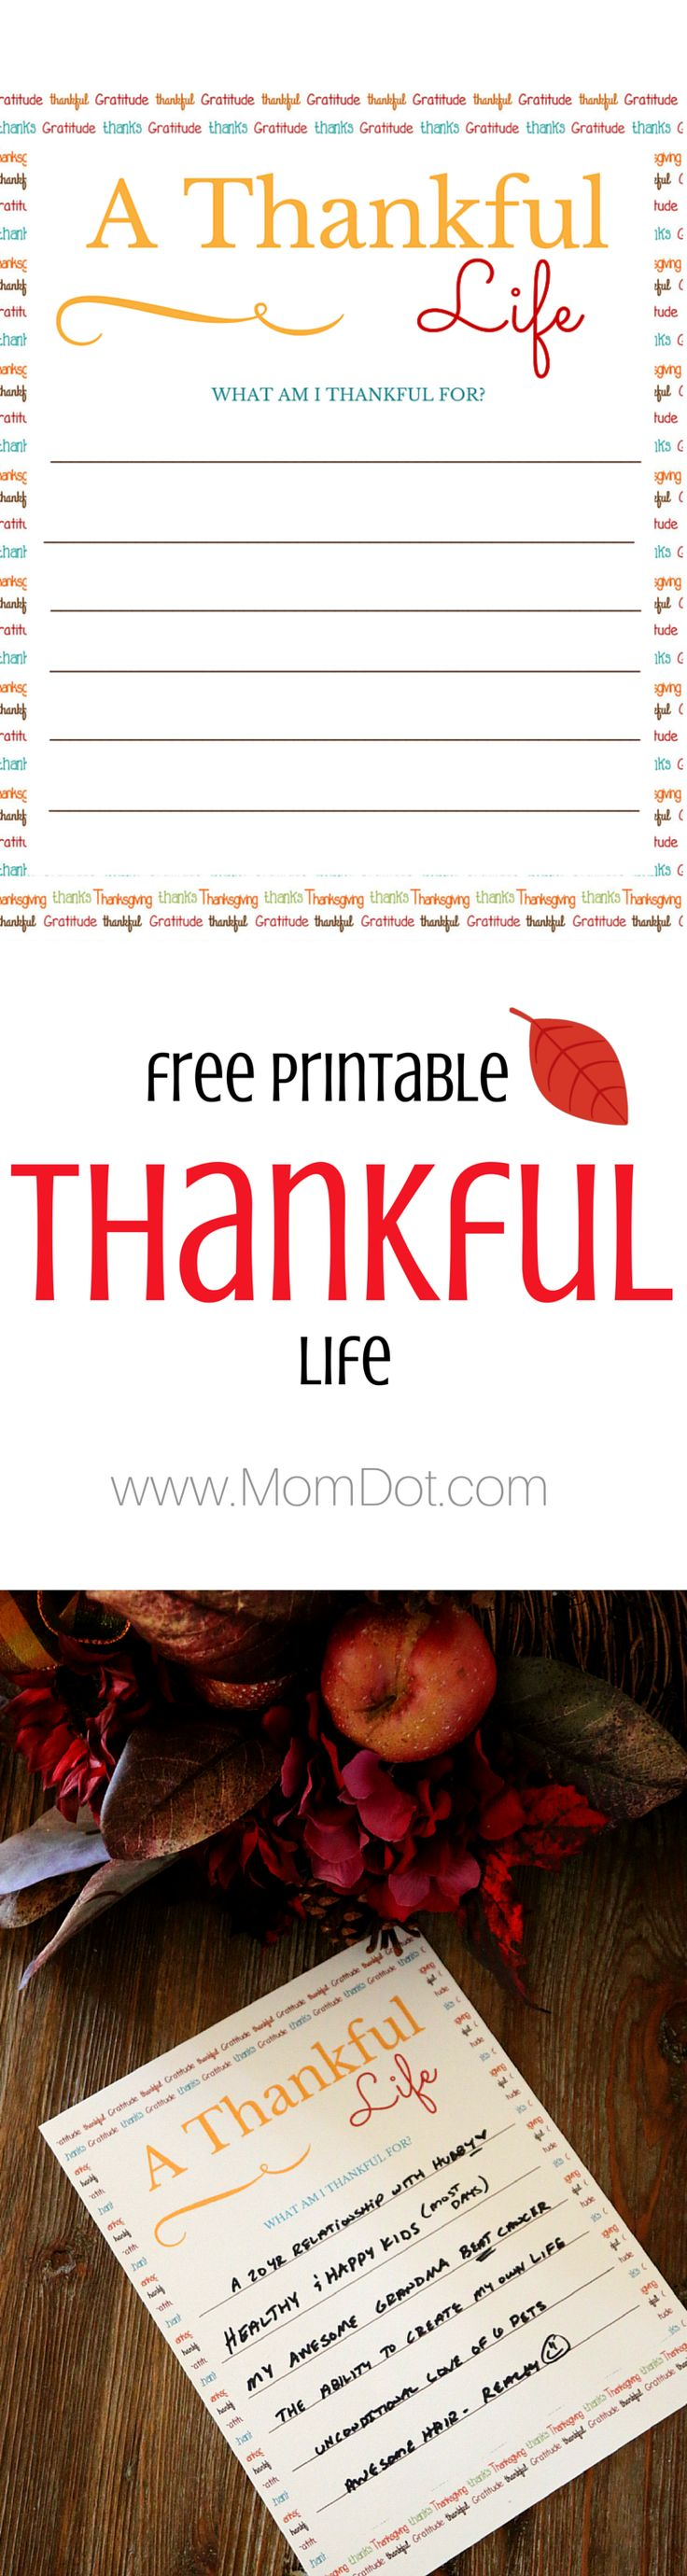 FREE PRINTABLE: Thanksgiving is all about being able to remind yourself and others of your blessings, download our free Thankful printable and have your family write out what they are thankful for